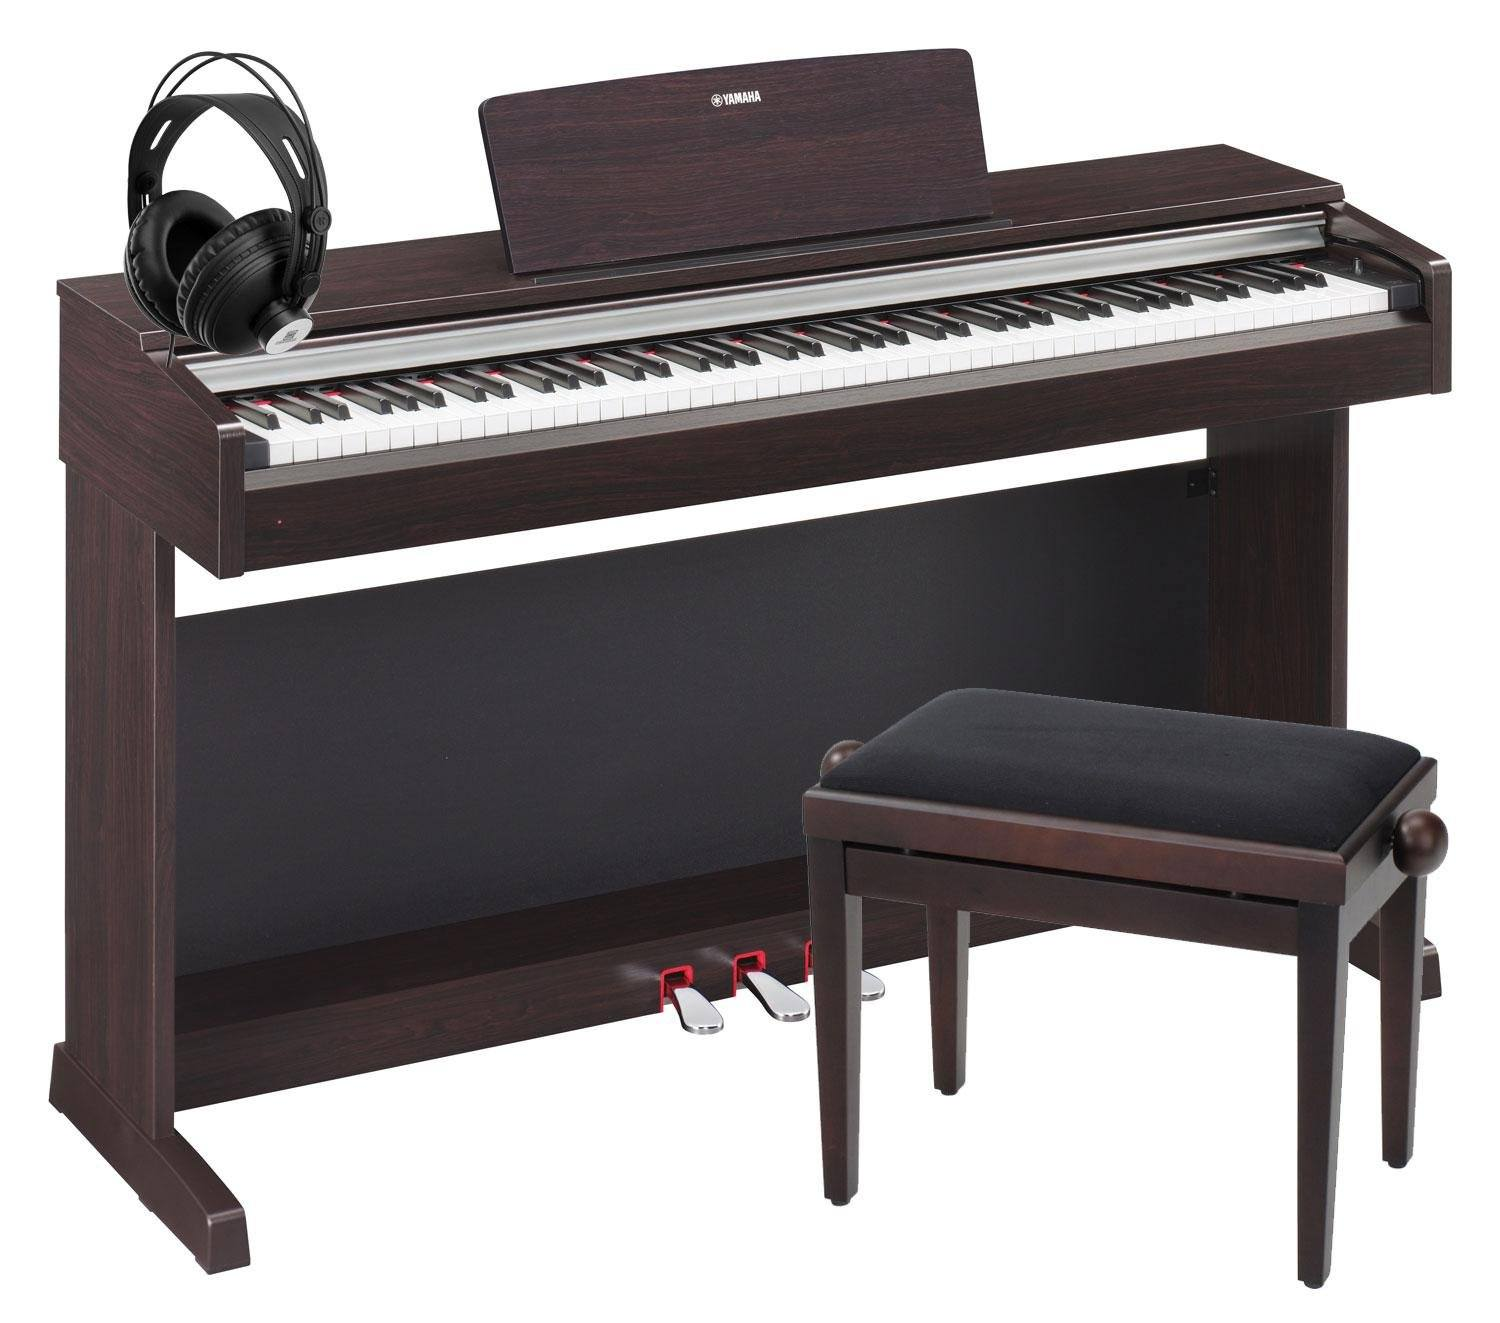 What types of E-Pianos are available? advantages and disadvantages